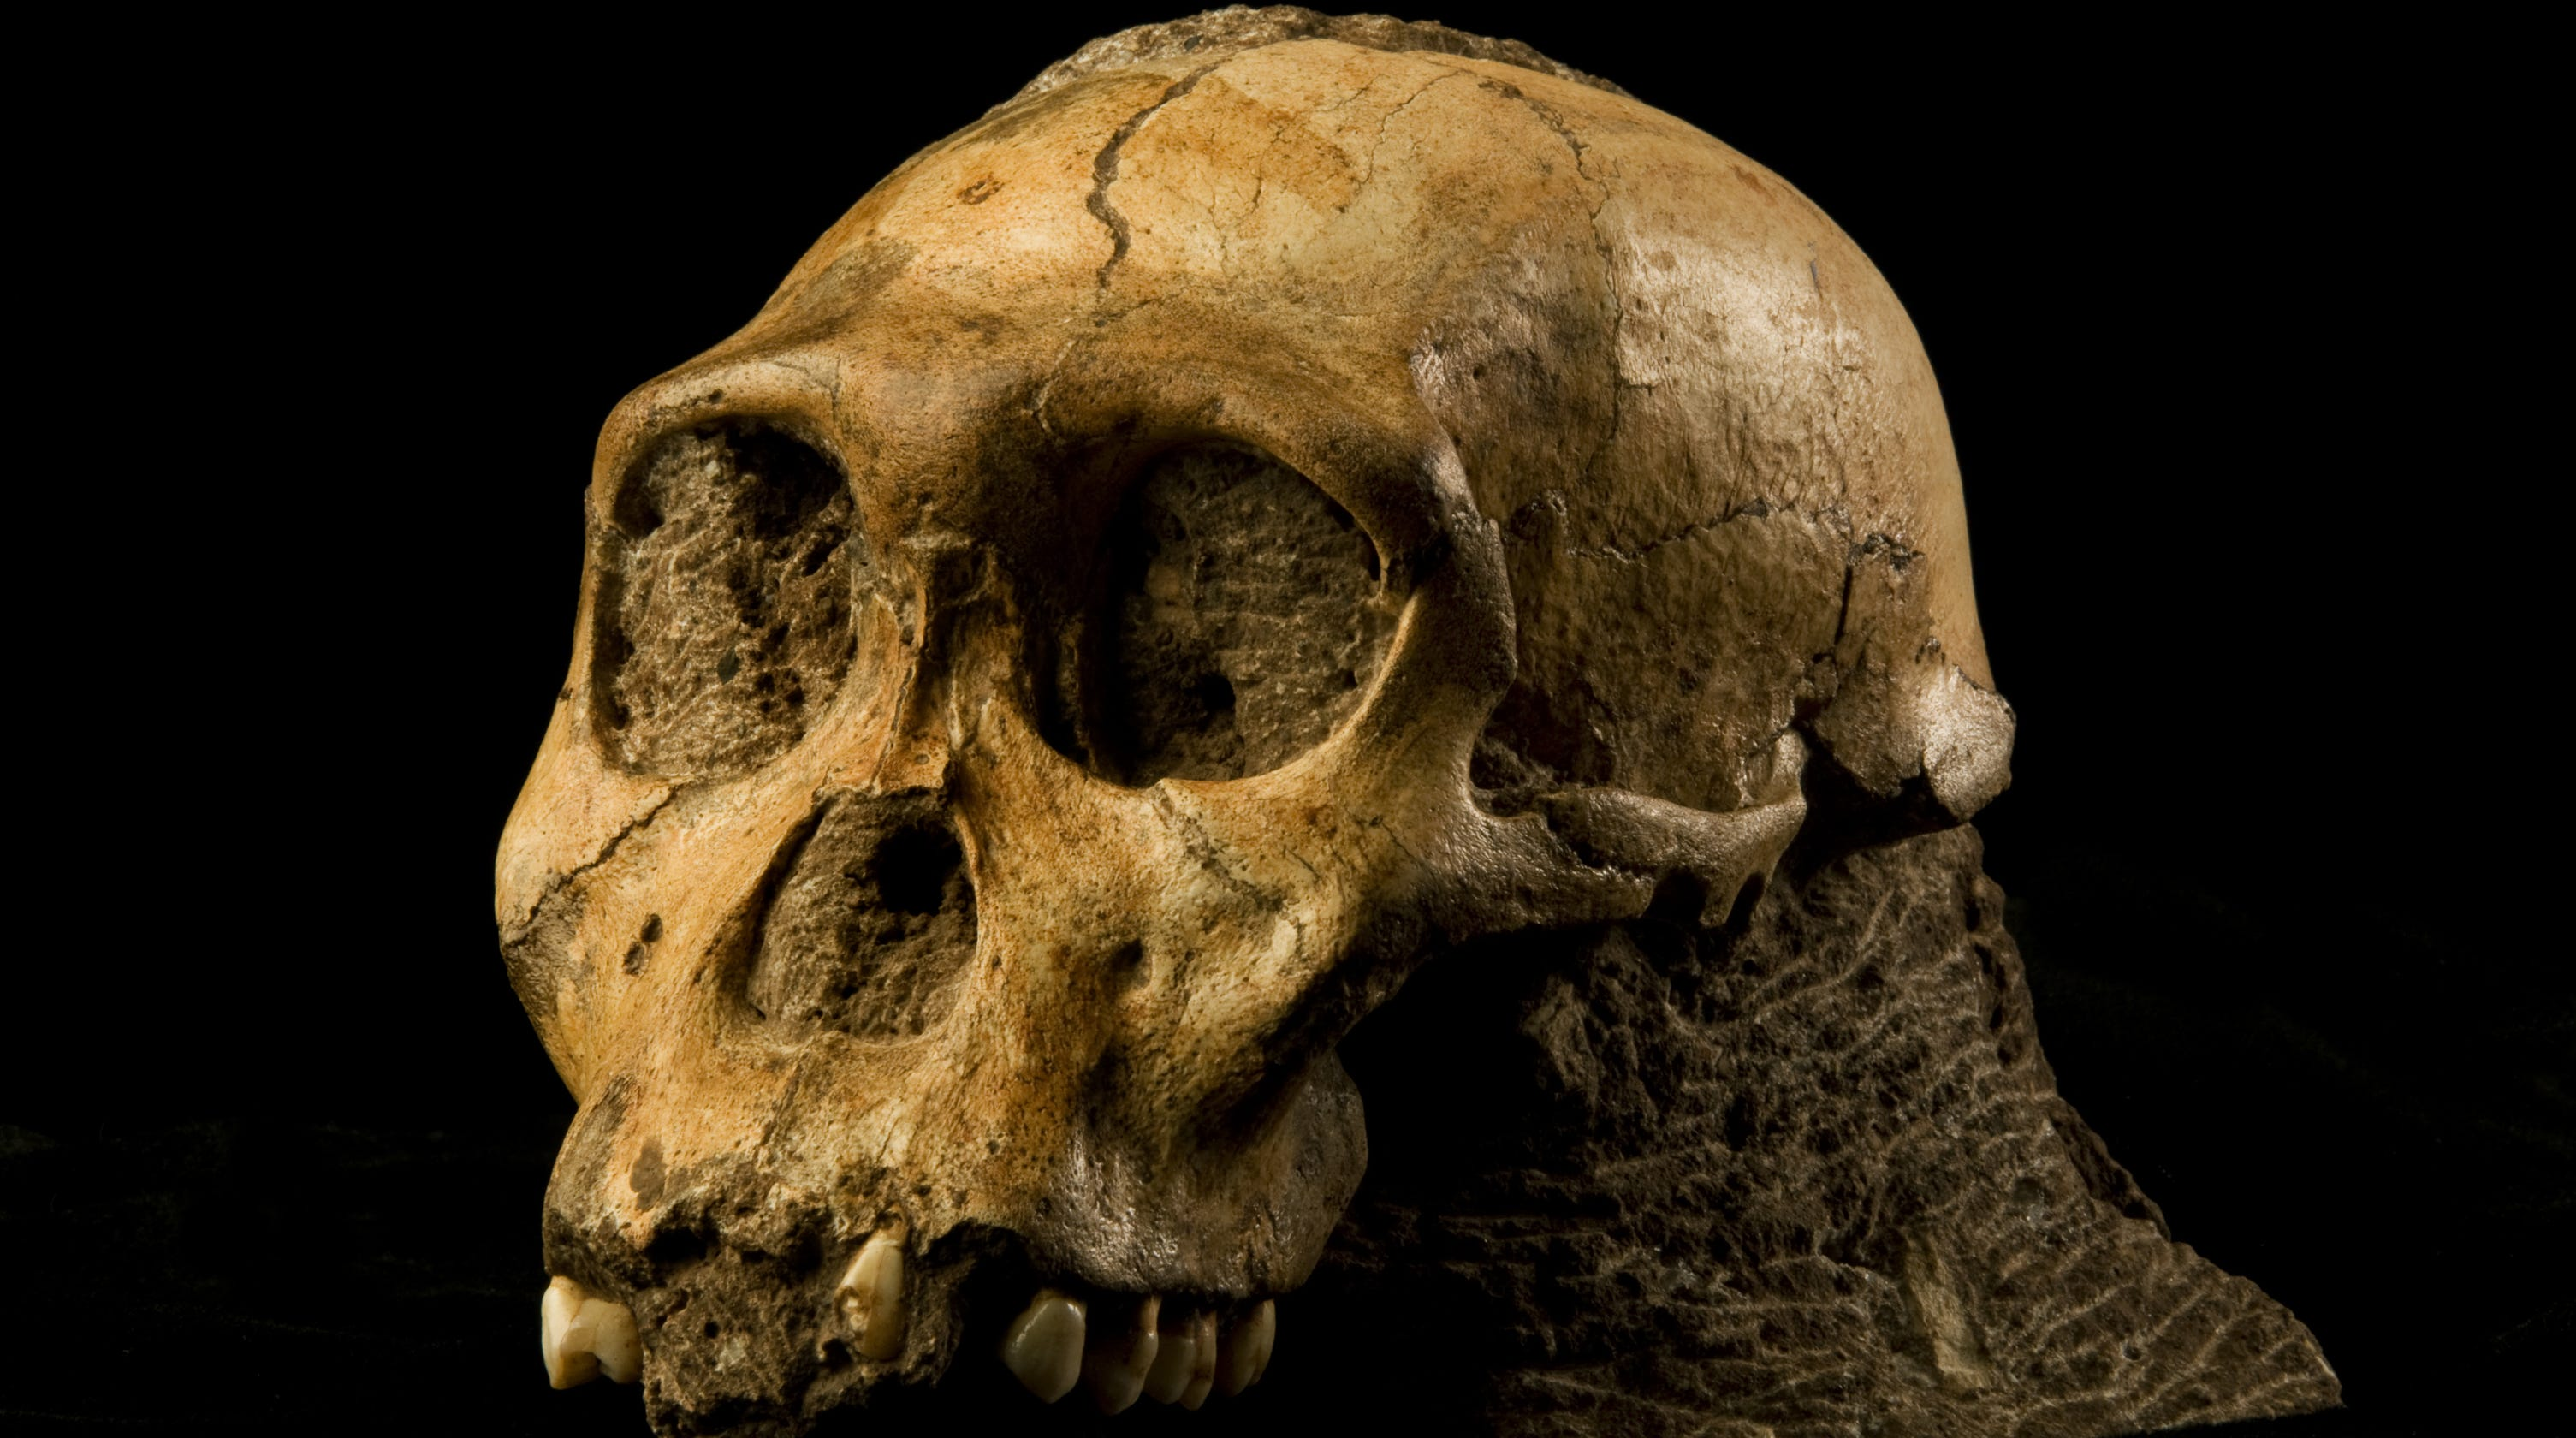 Fossils discovered in South Africa are the 'missing link' in human evolution, study finds